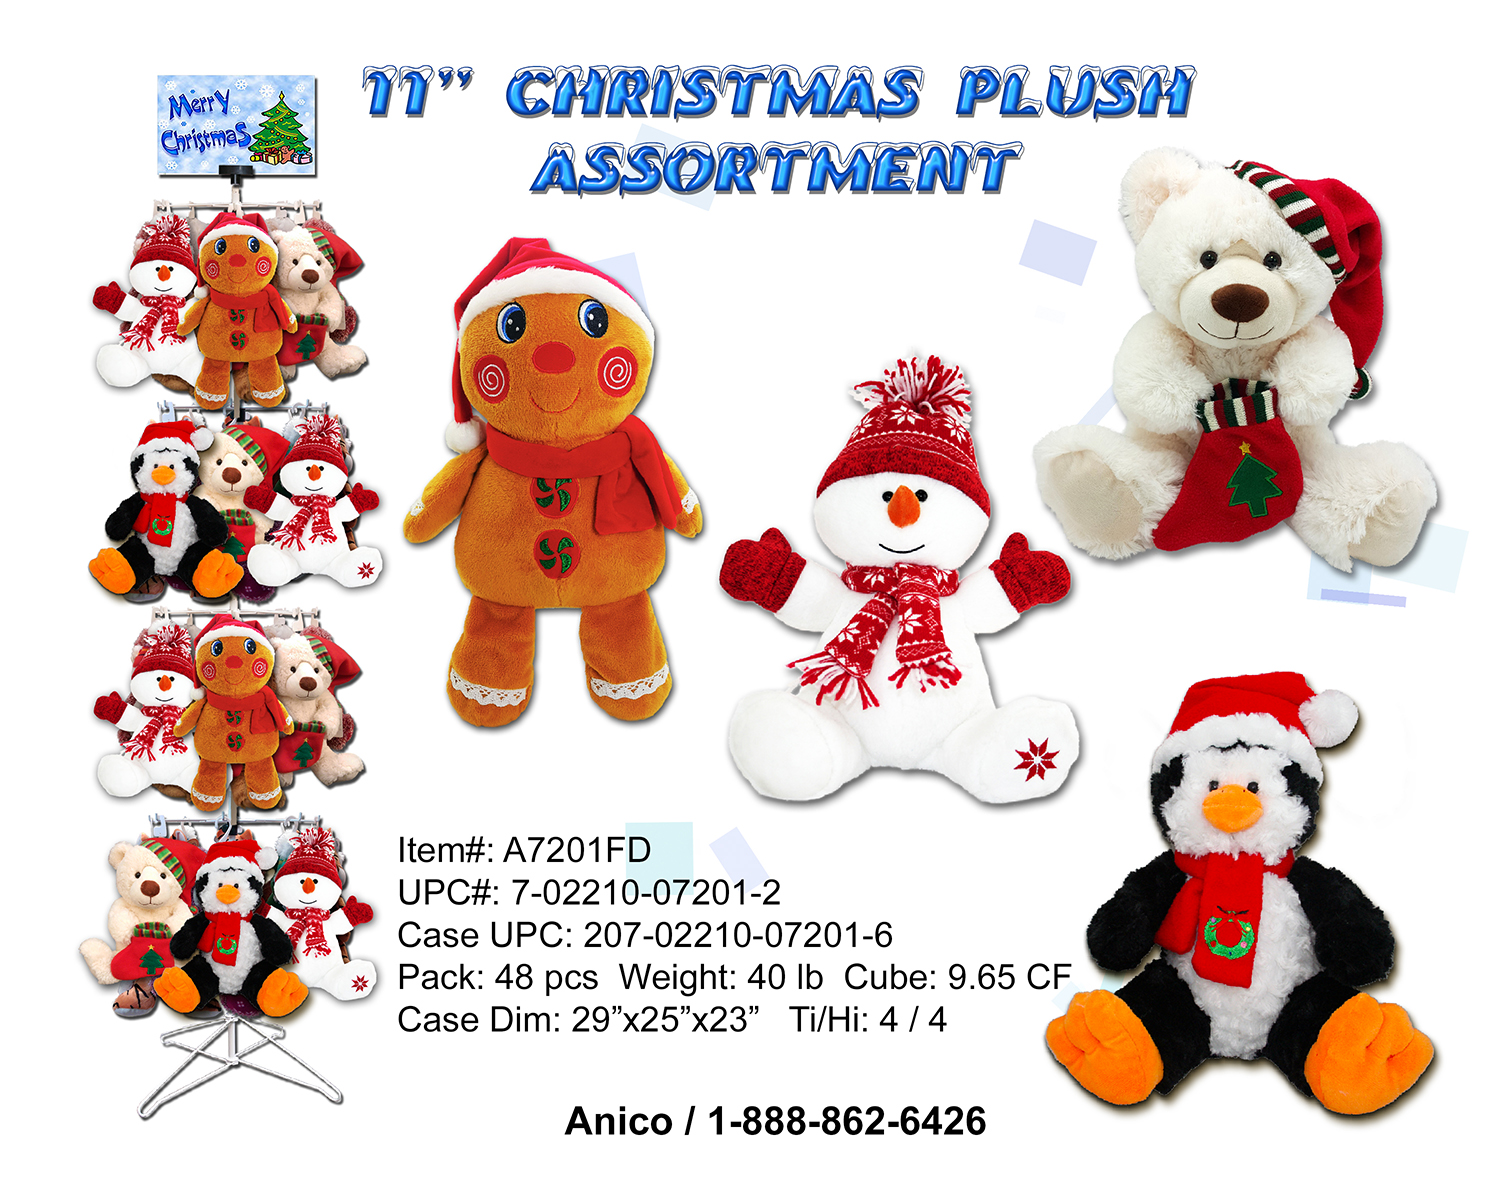 A7201FD Christmas Plush Sheet 011119 cop